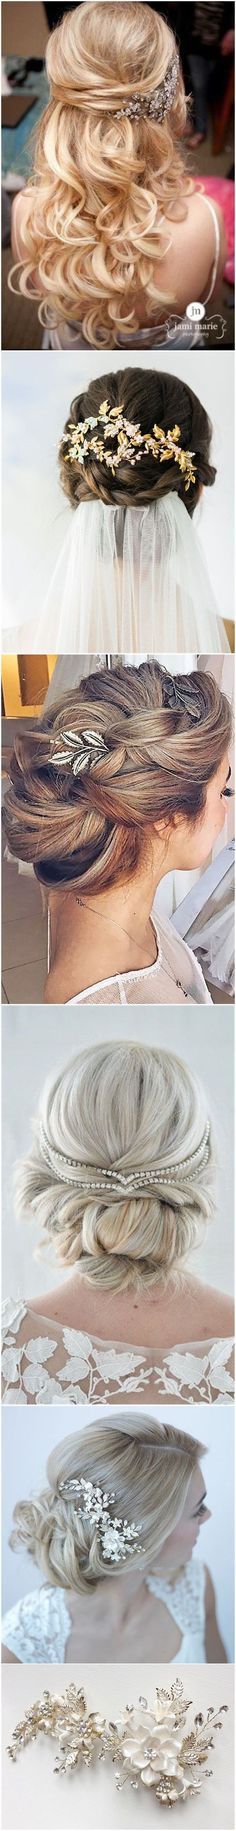 Wedding Hairstyles » Hair Comes the Bride – 20 Bridal Hair Accessories Get Style Advice for Any Budget ❤️ See more: http://www.weddinginclude.com/2017/03/hair-comes-the-bride-bridal-hair-accessories-get-style-advice-for-any-budget/ http://noahxnw.tumblr.com/post/157429908986/short-hair-with-bangs-short-hairstyles-2017